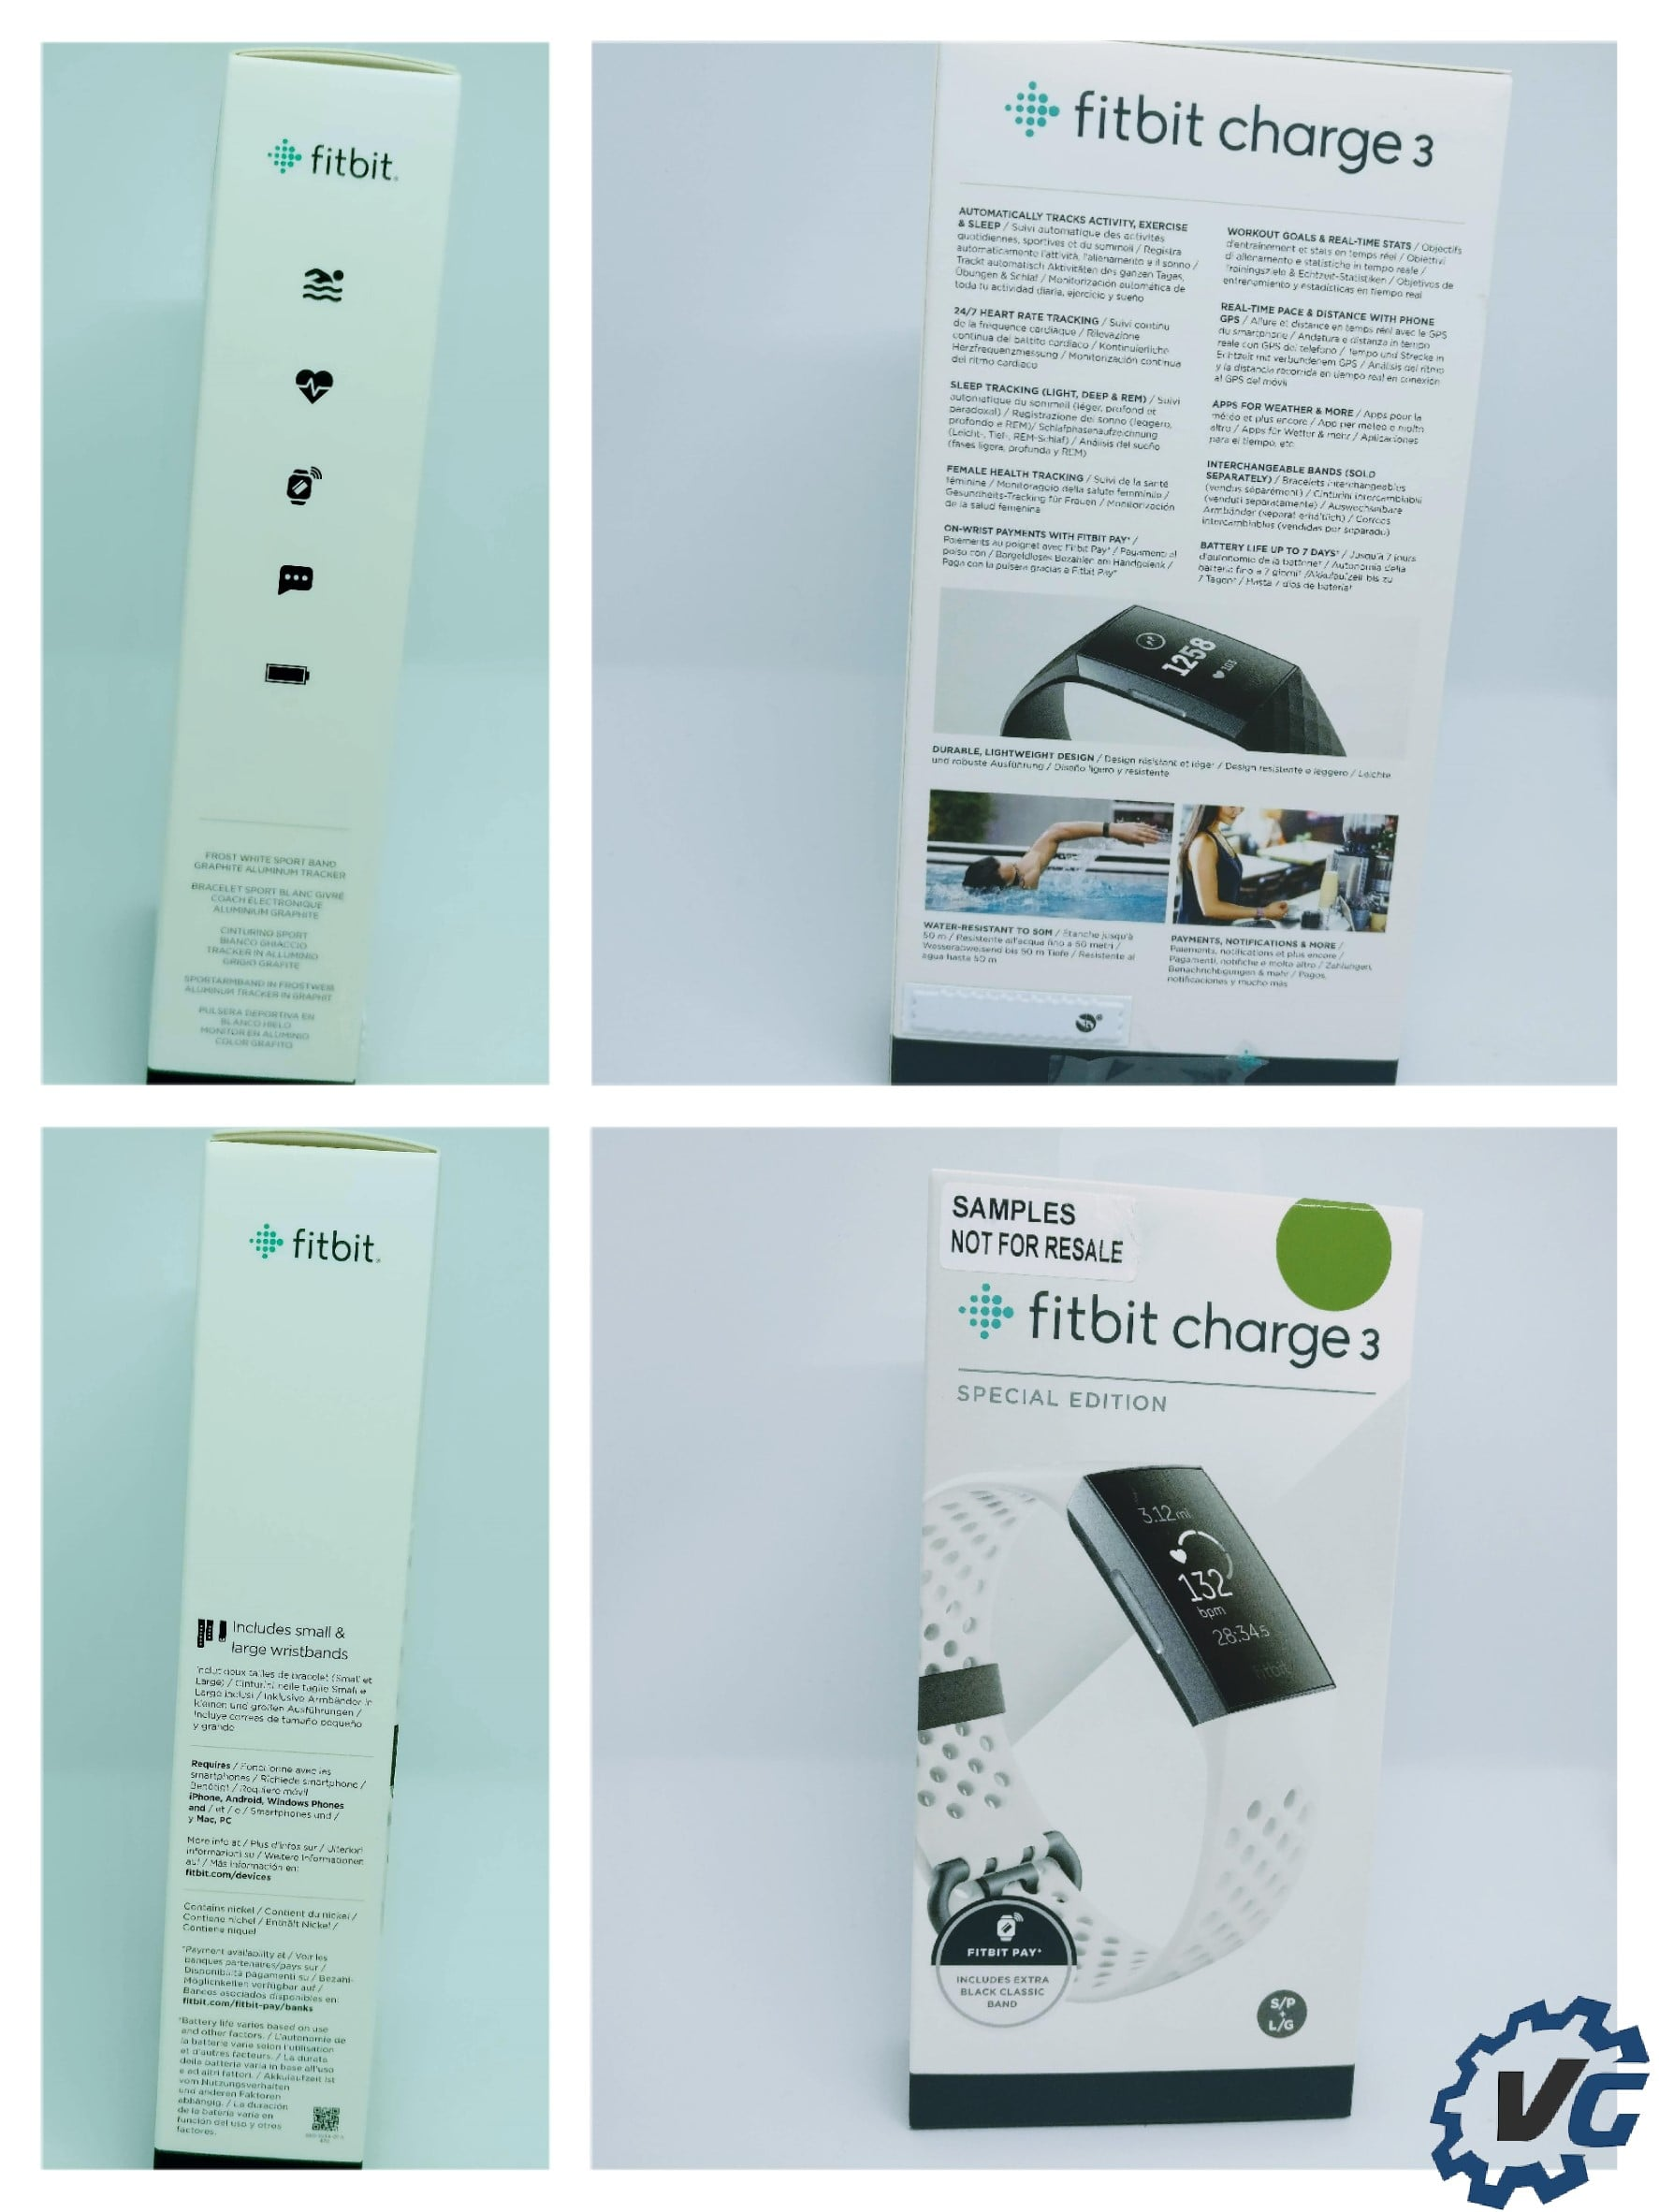 Fitbit Charge 3 box